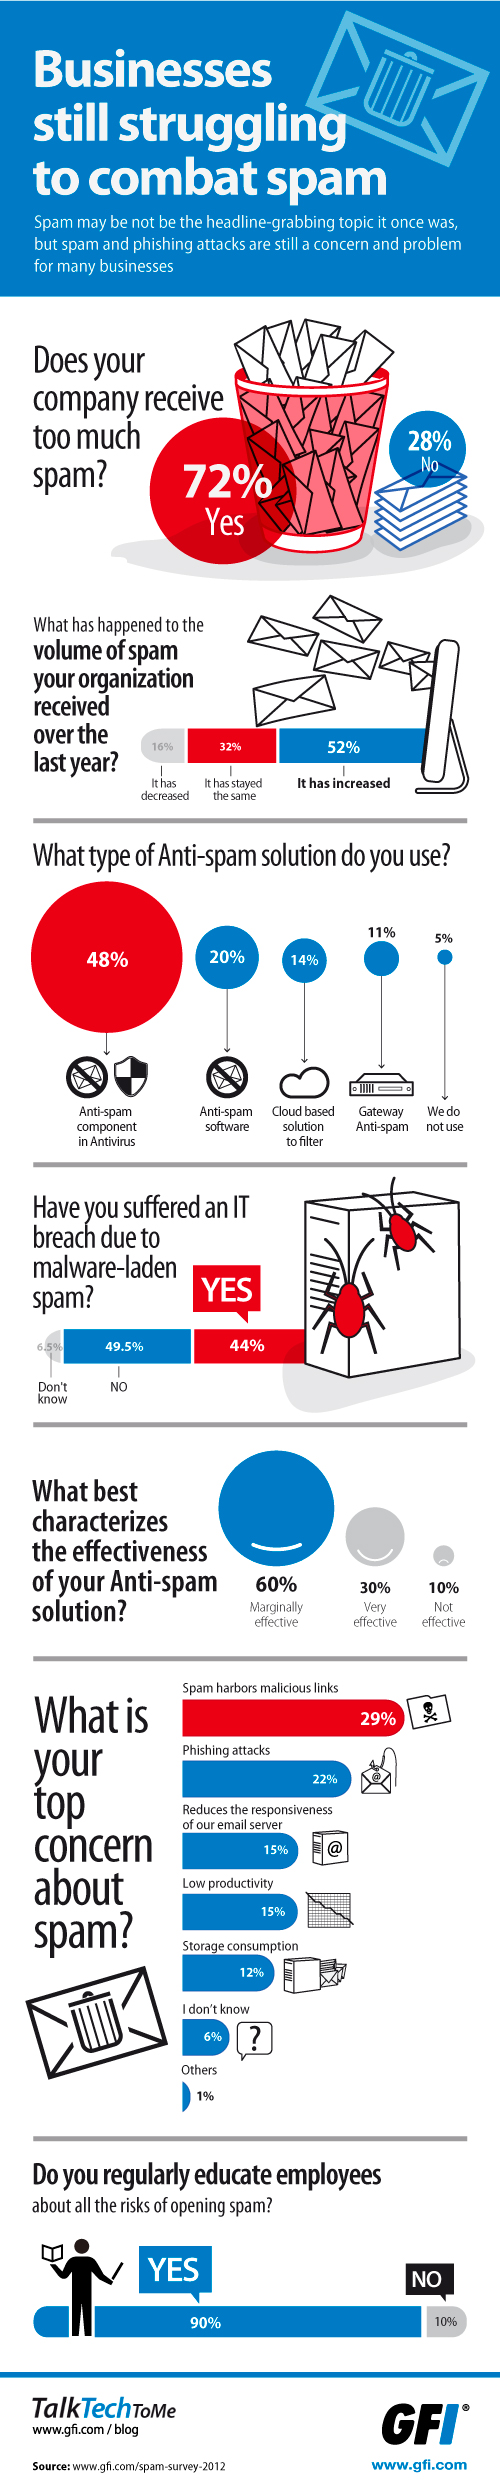 Spam Survey Infographic 2012 - US